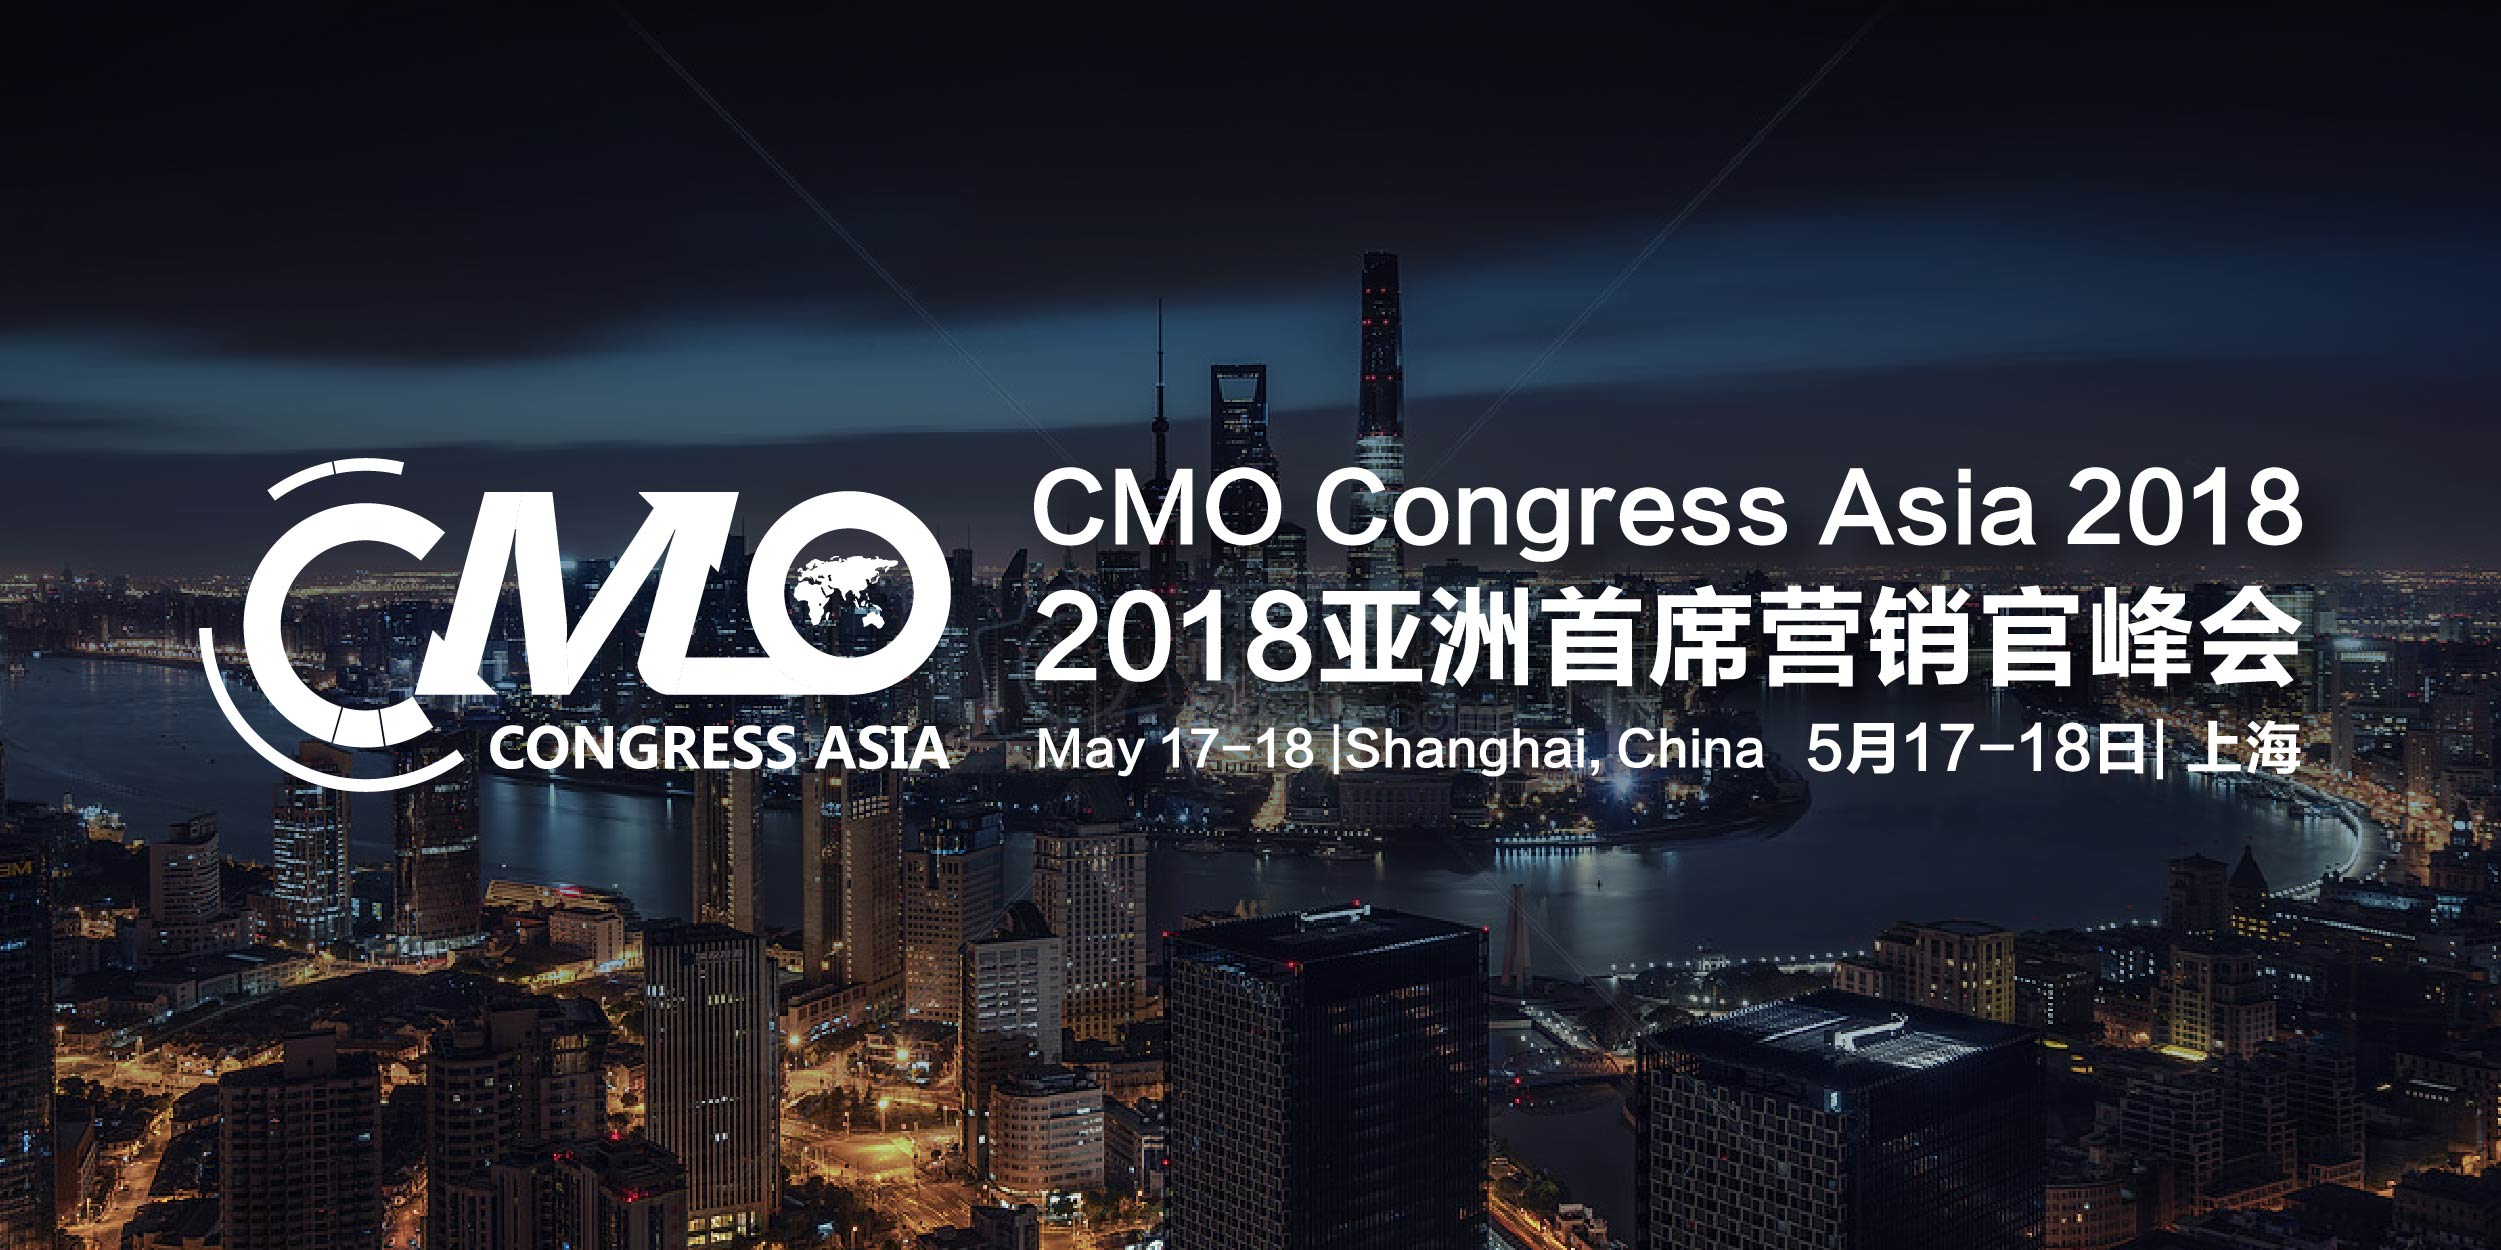 CMO Congress Asia 2018